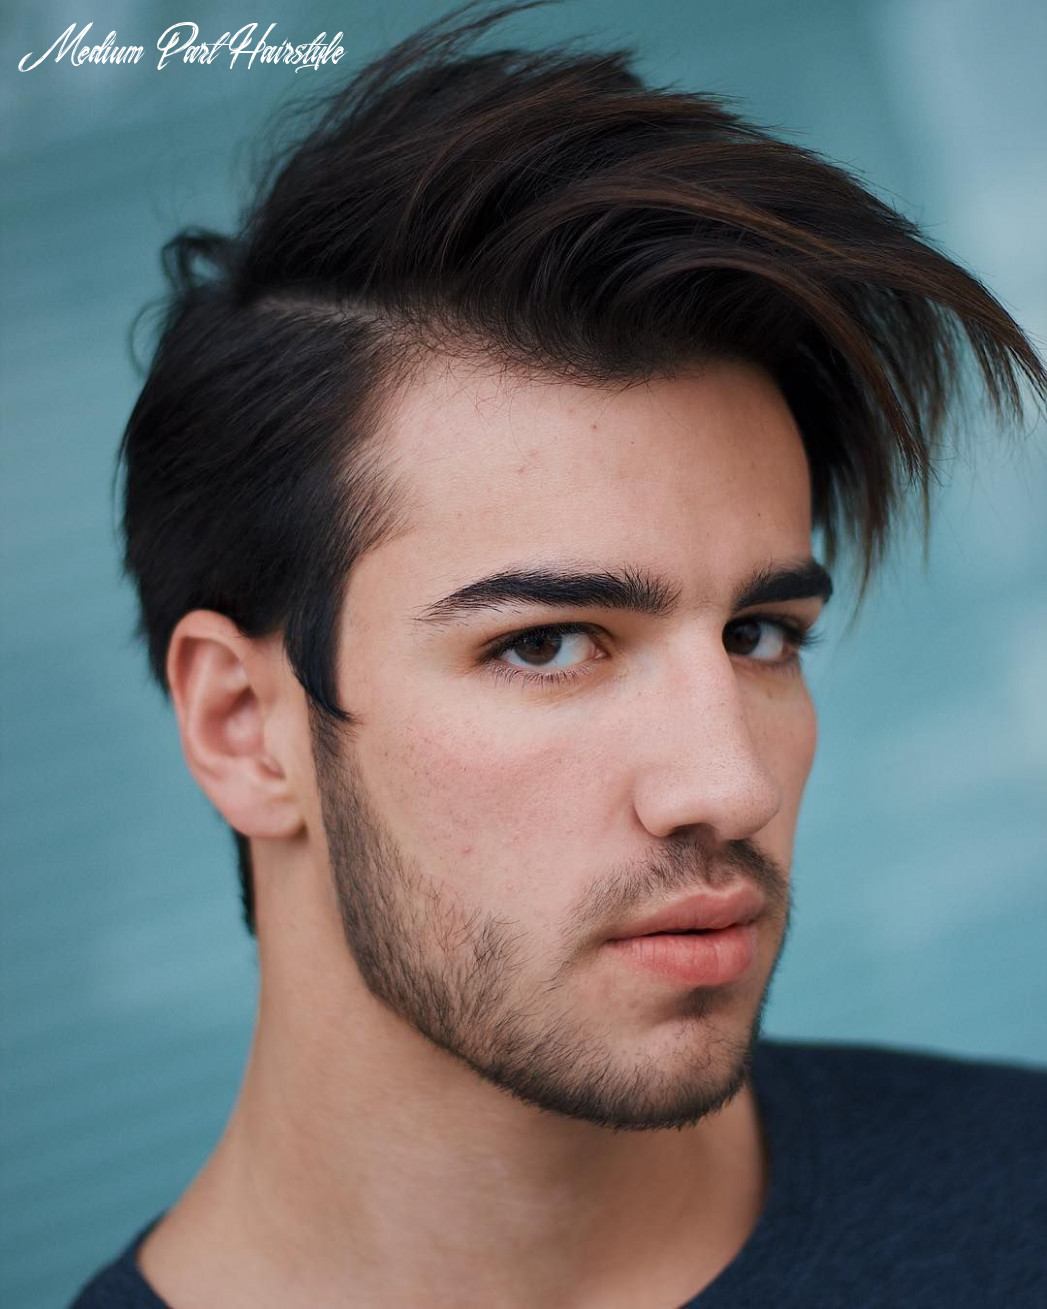 Top 10 elegant haircuts for guys with square faces | mens haircuts